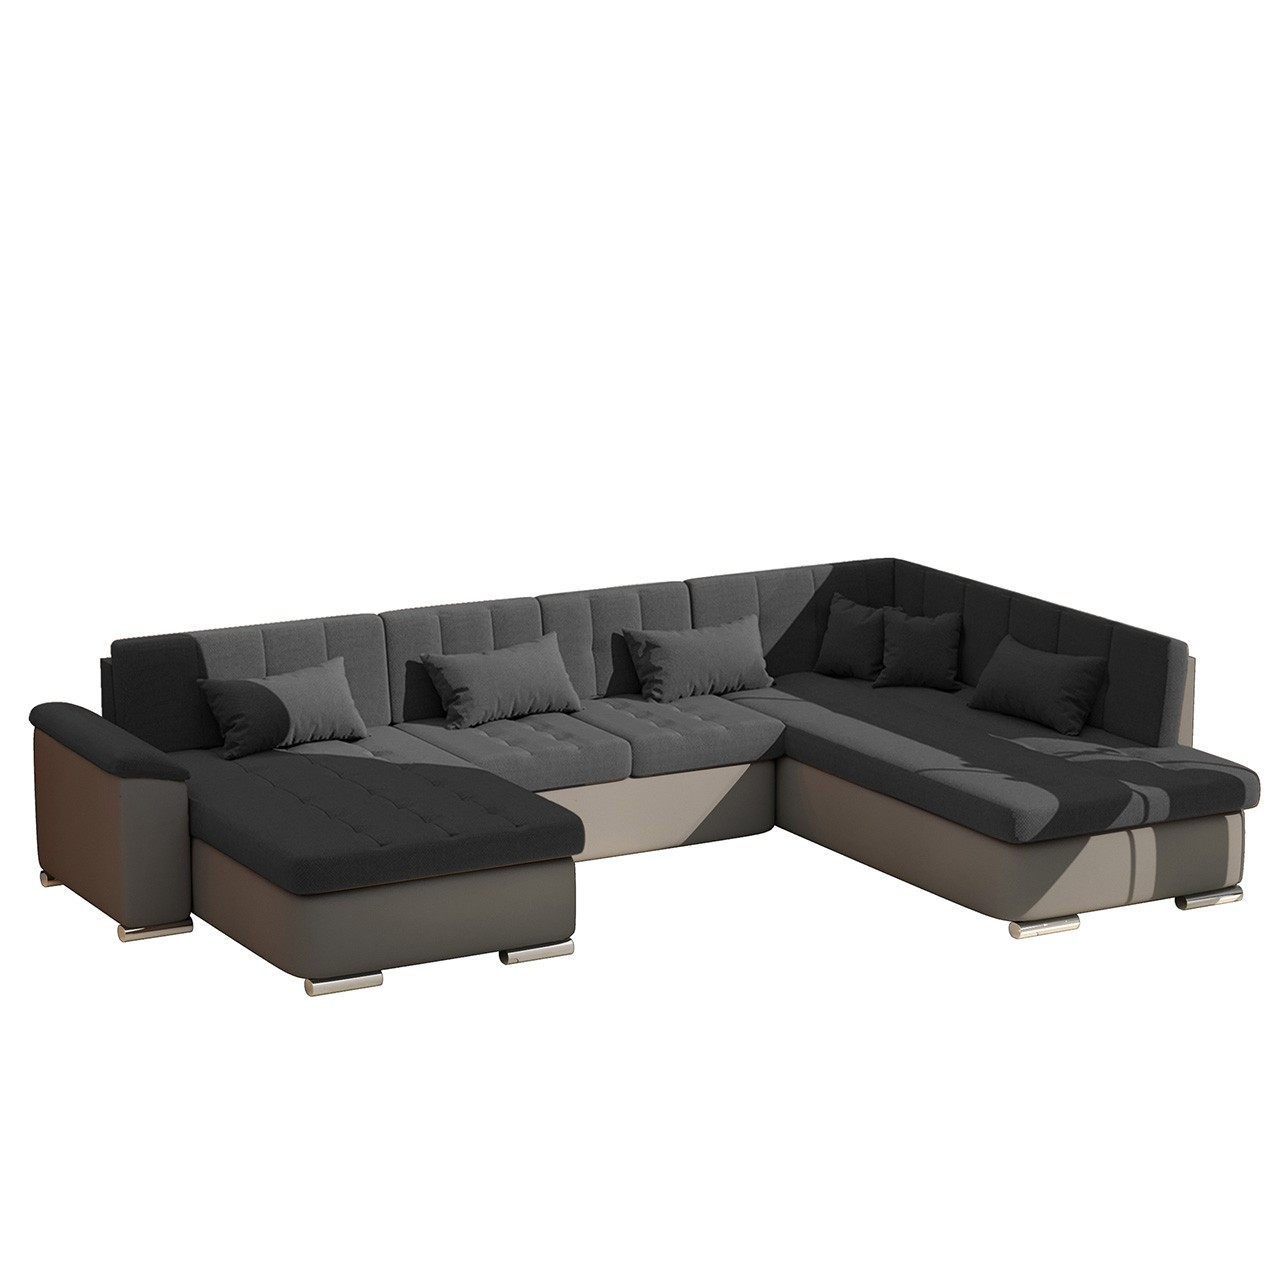 ecksofa u form mit schlaffunktion. Black Bedroom Furniture Sets. Home Design Ideas